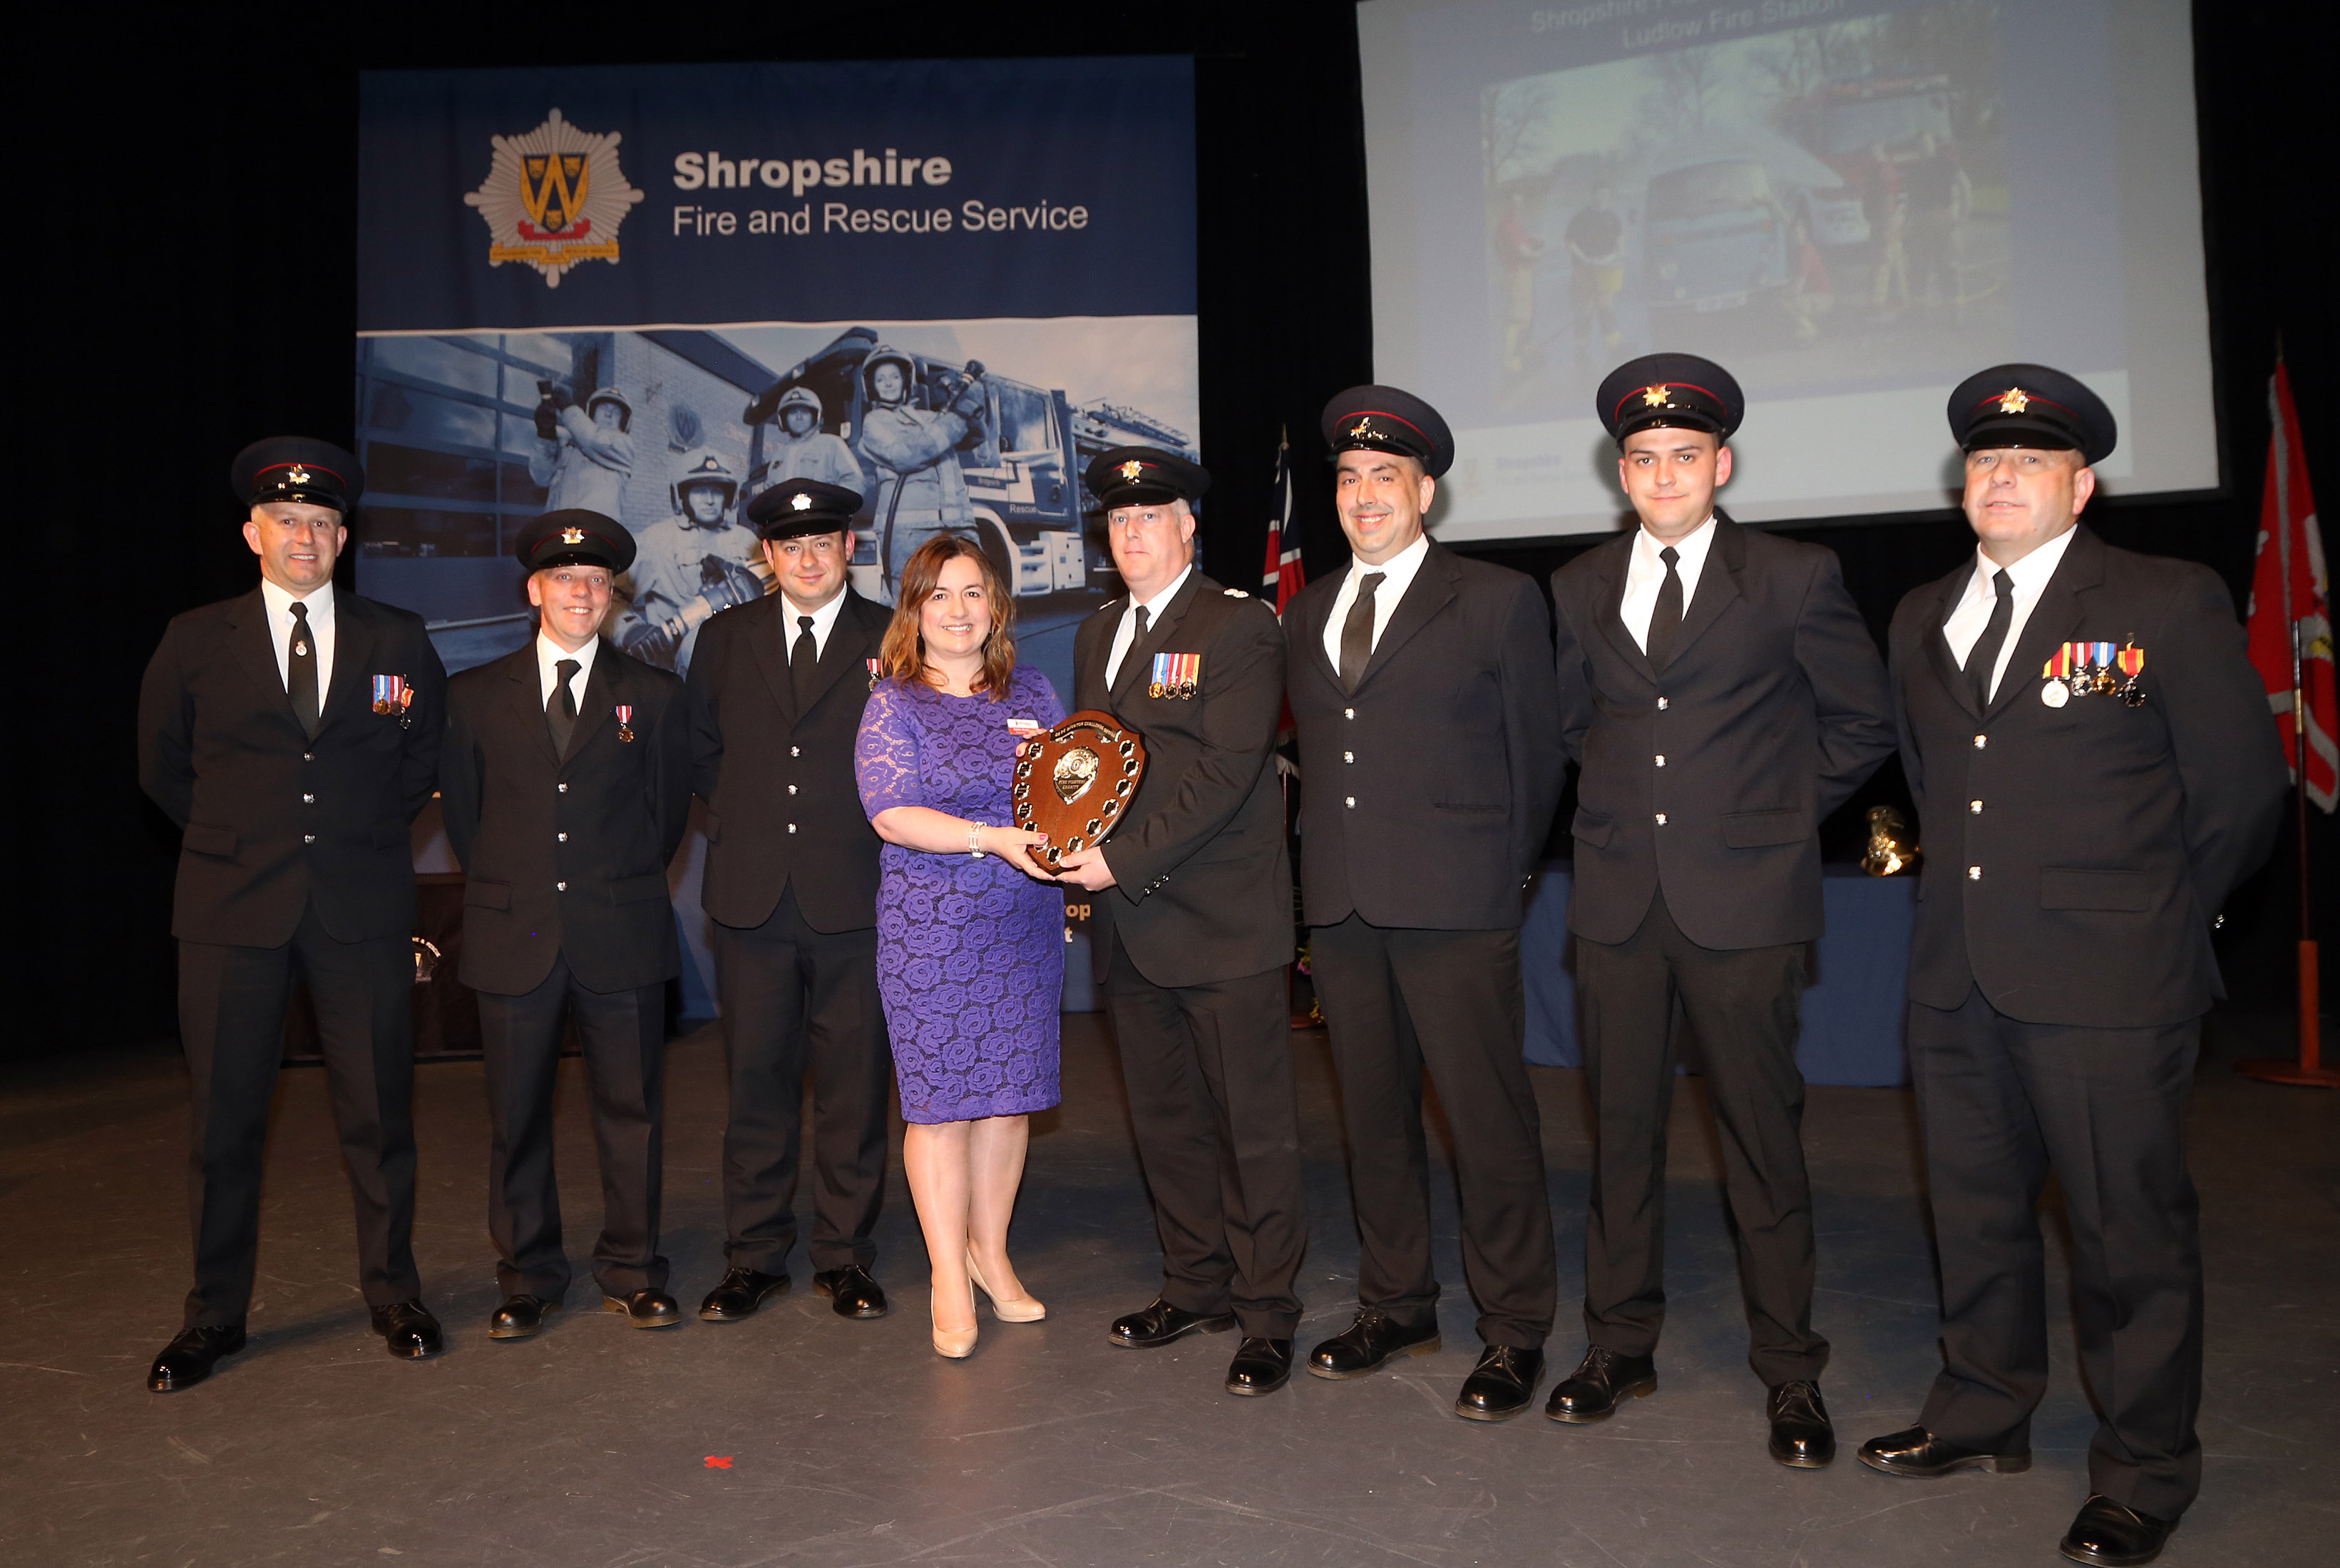 Ludlow Fire Station was awarded the Dave Bishton Challenge Shield for raising more than £4,000 for the Fire Fighters Charity over the past year. Pictured are, left to right, Steve Perks, Mark Nicholas, Ashley Brown, Charity fundraising officer Debbie Rushbrooke, Watch Manager Glyn Davies, Shaun Harrison, Olie Powis and Graham Oliver.